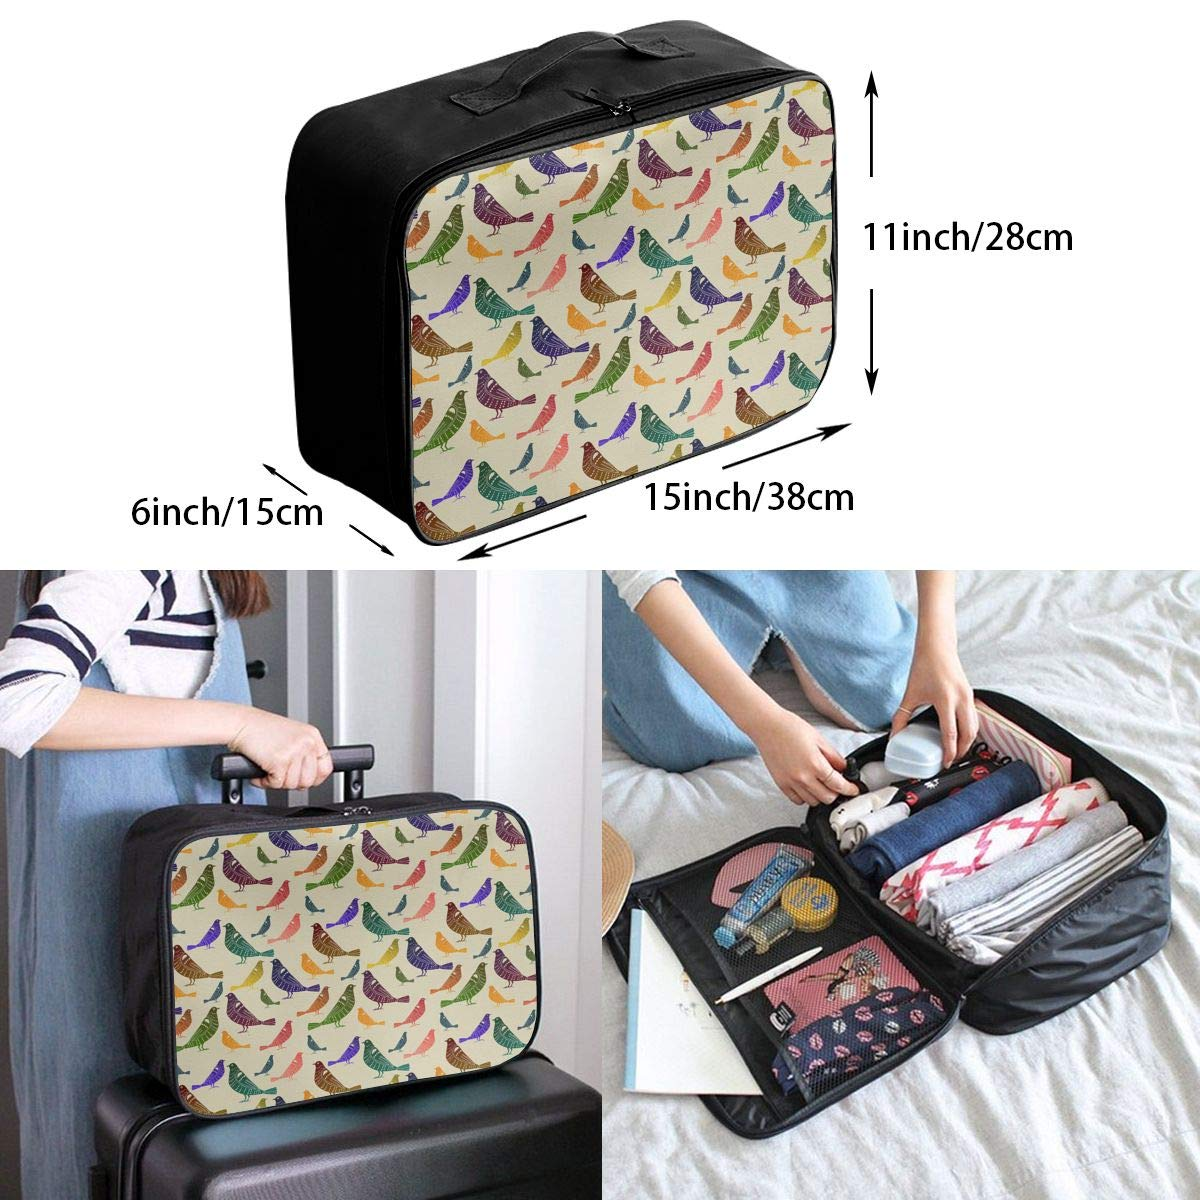 Travel Fashion Lightweight Large Capacity Duffel Portable Waterproof Foldable Storage Carry Luggage Tote Bag Rainbow Parakeets Budgies